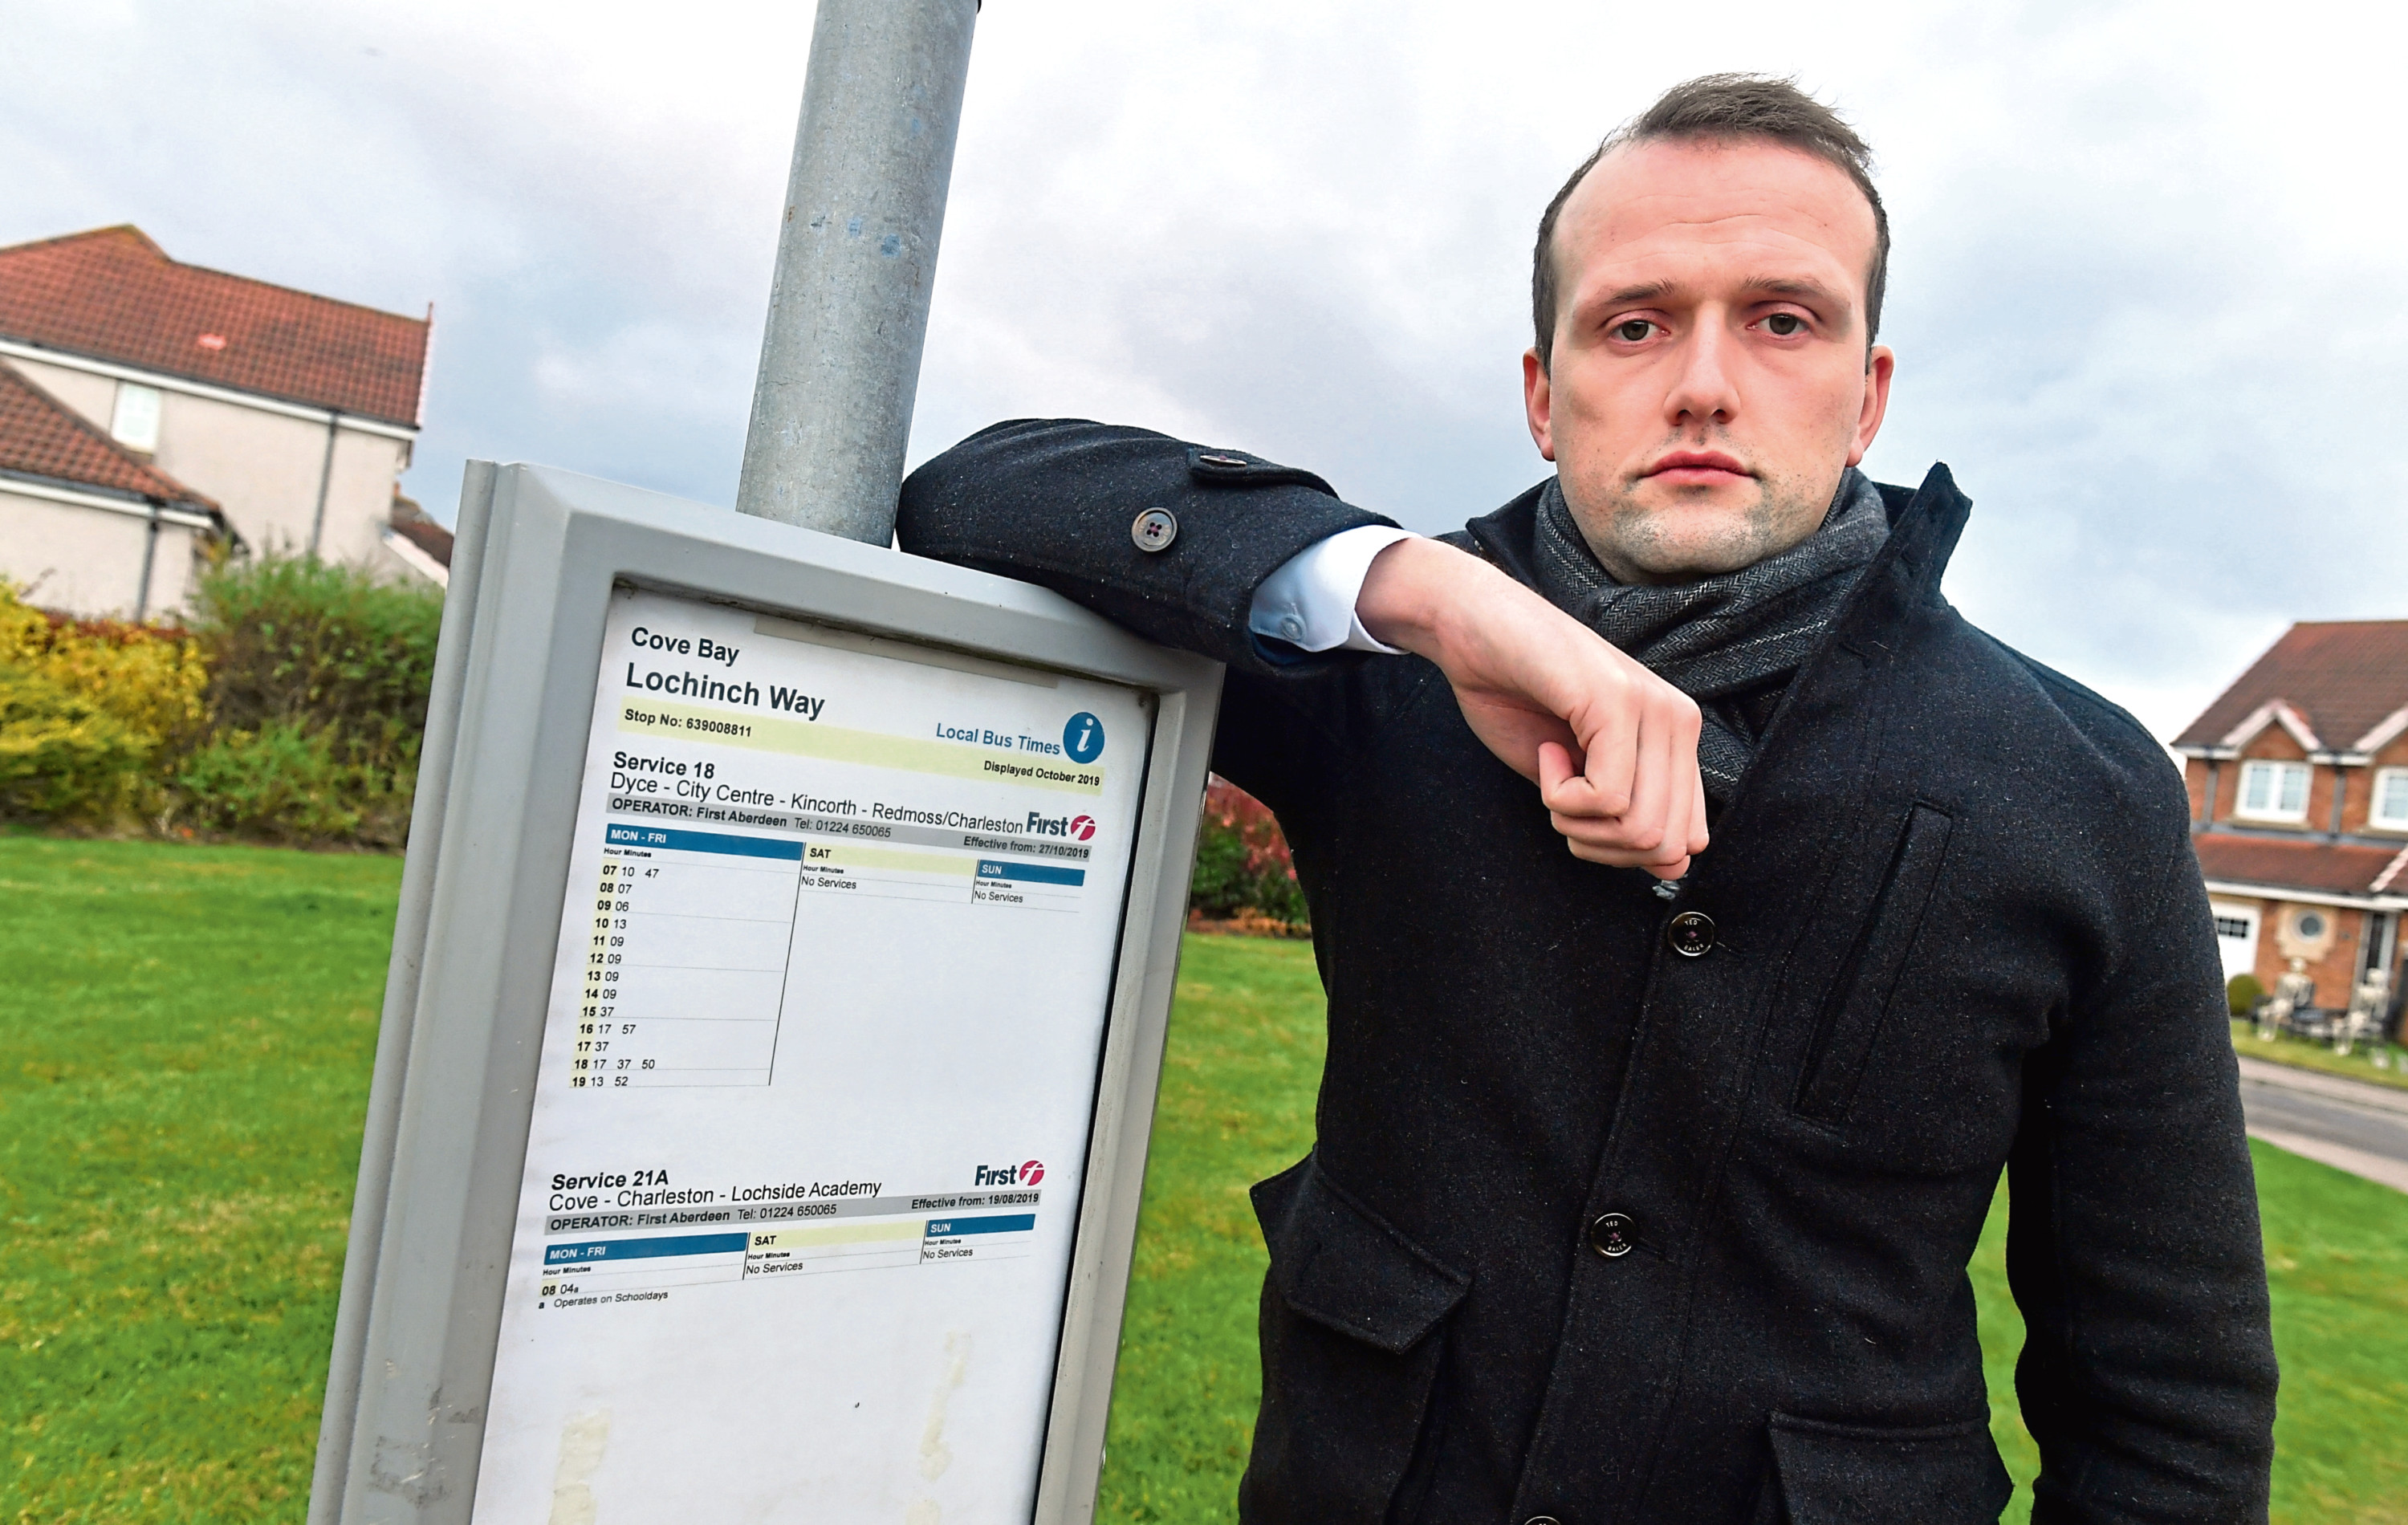 Councillor Stephen Flynn has criticised the changes to bus services.